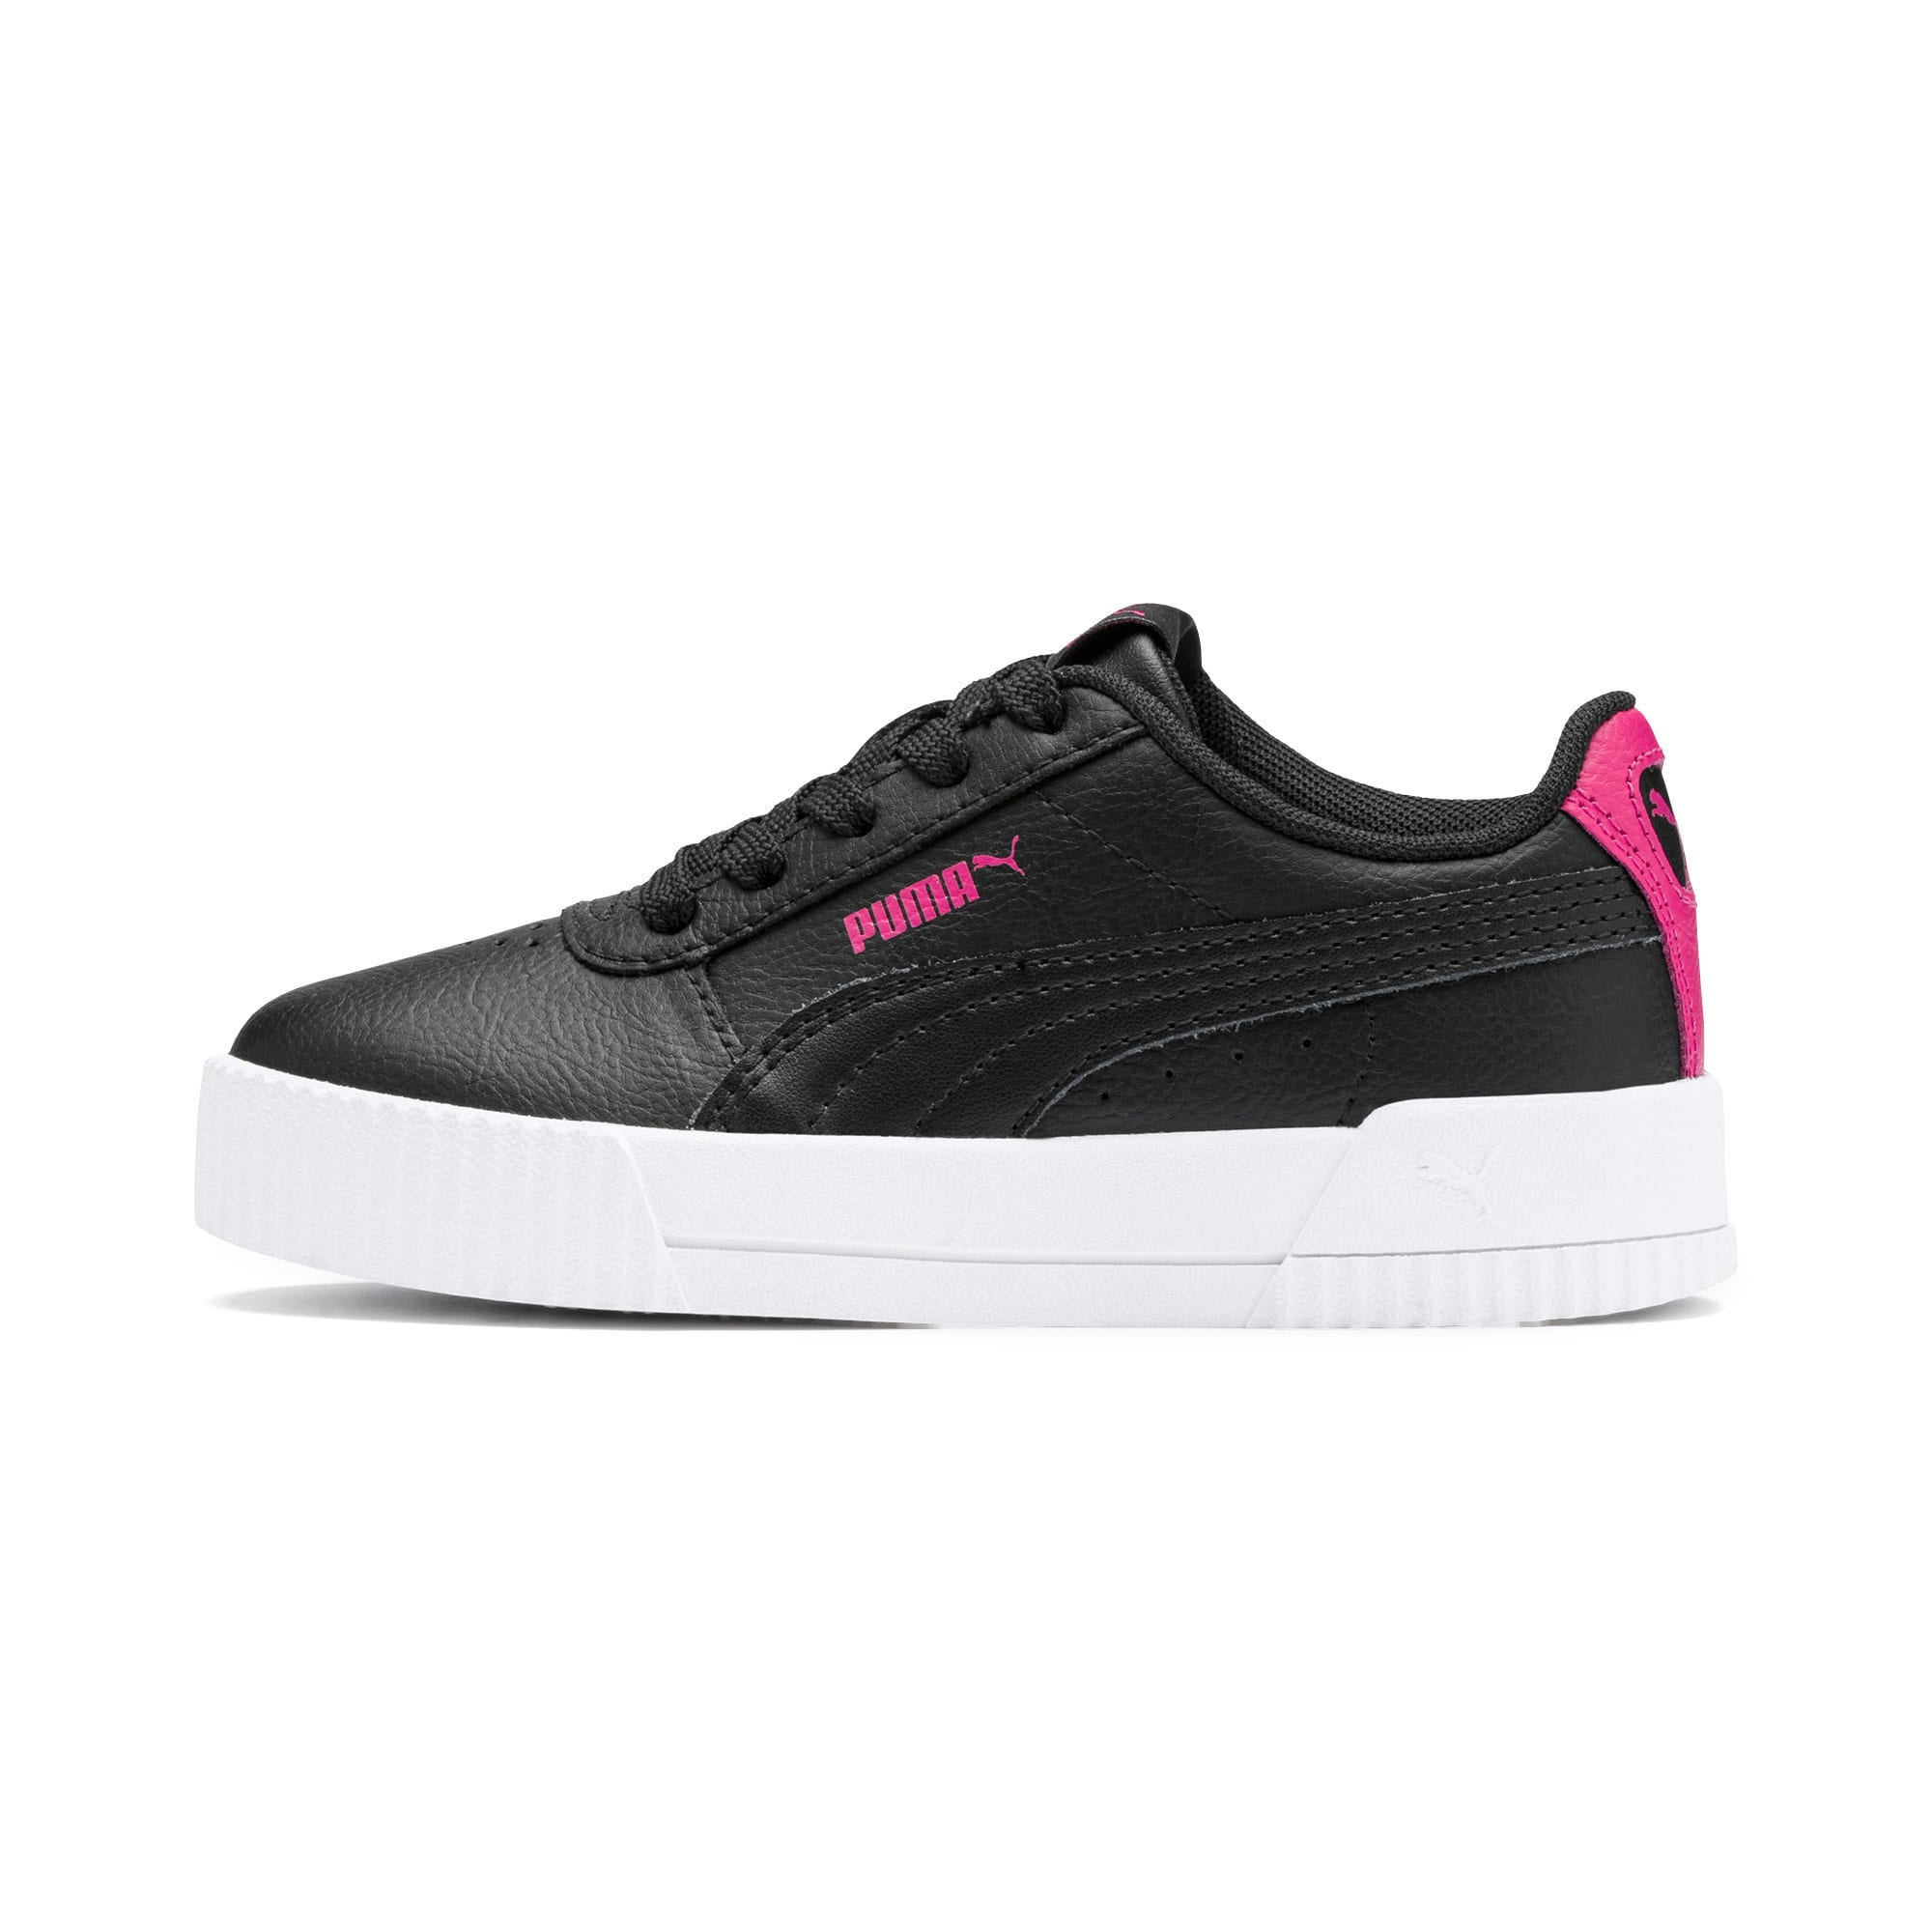 Thumbnail 1 of Carina L Kids' Trainers, Puma Black-Puma Black, medium